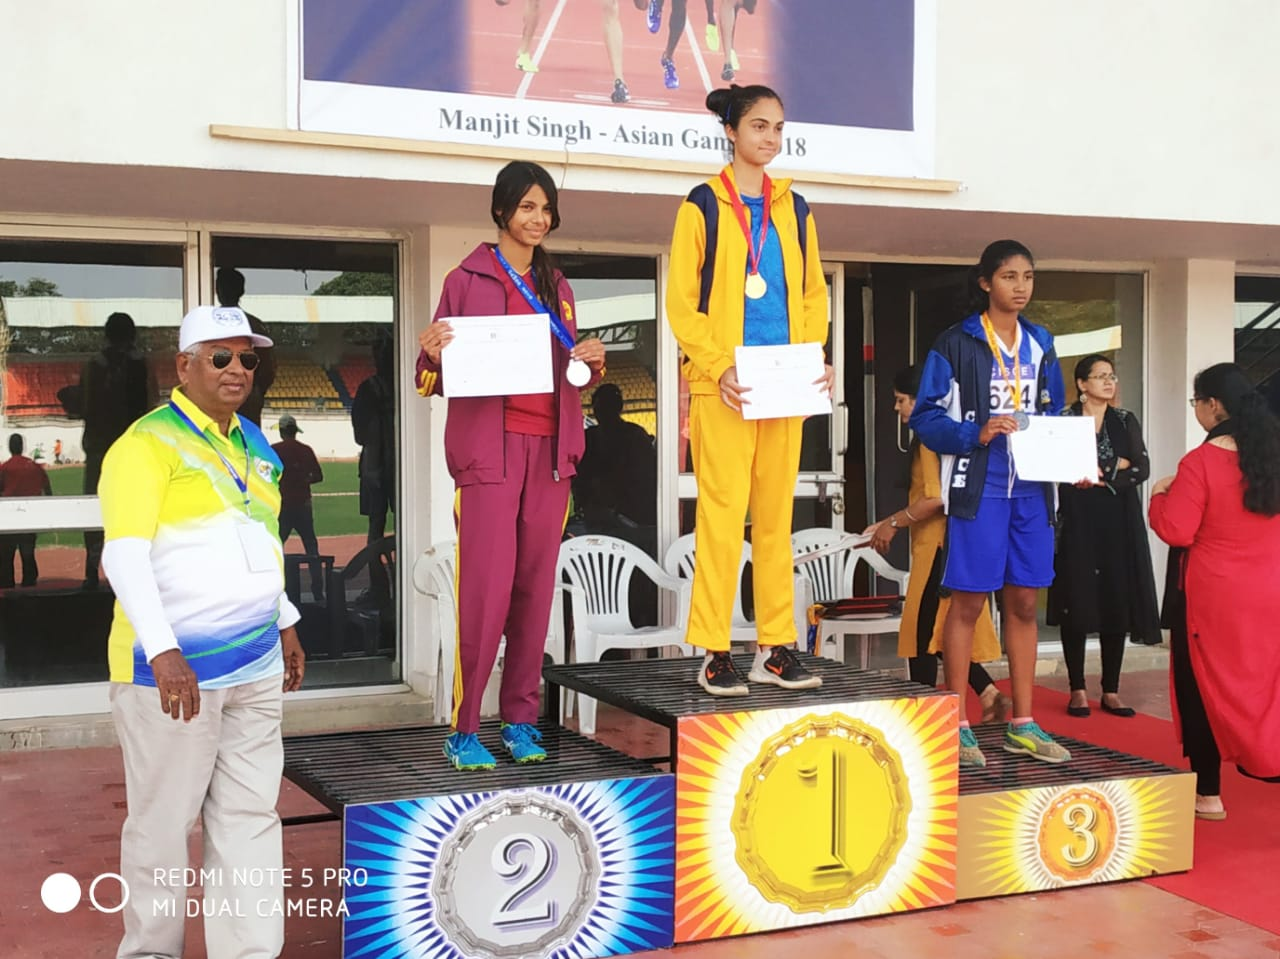 Spoorthy K C - National Gold Medal Winner in High Jump at the CISCE National Athletic Meet, Pune